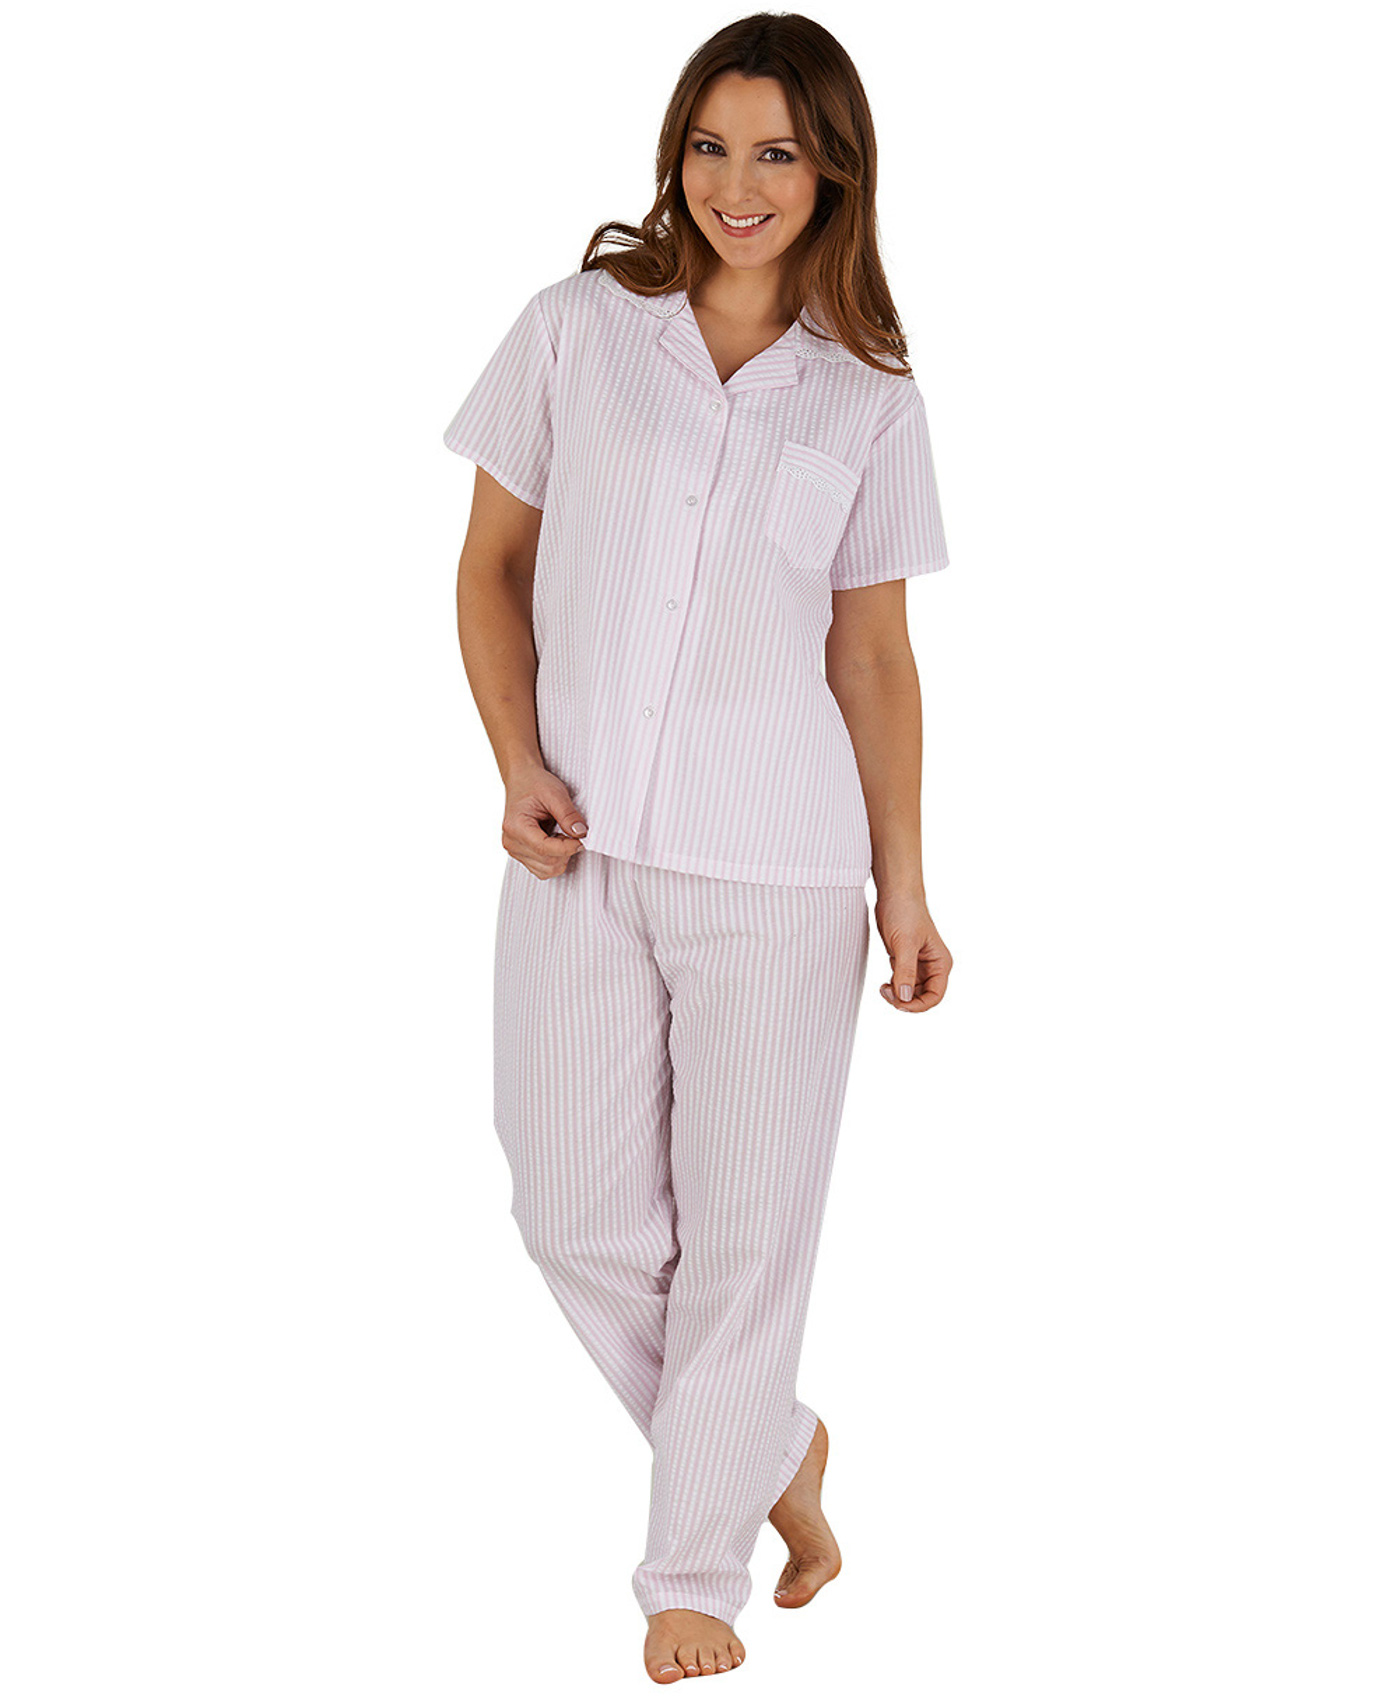 Product Features Ladies fleecy grey all in one pyjama suit with snowflake design.